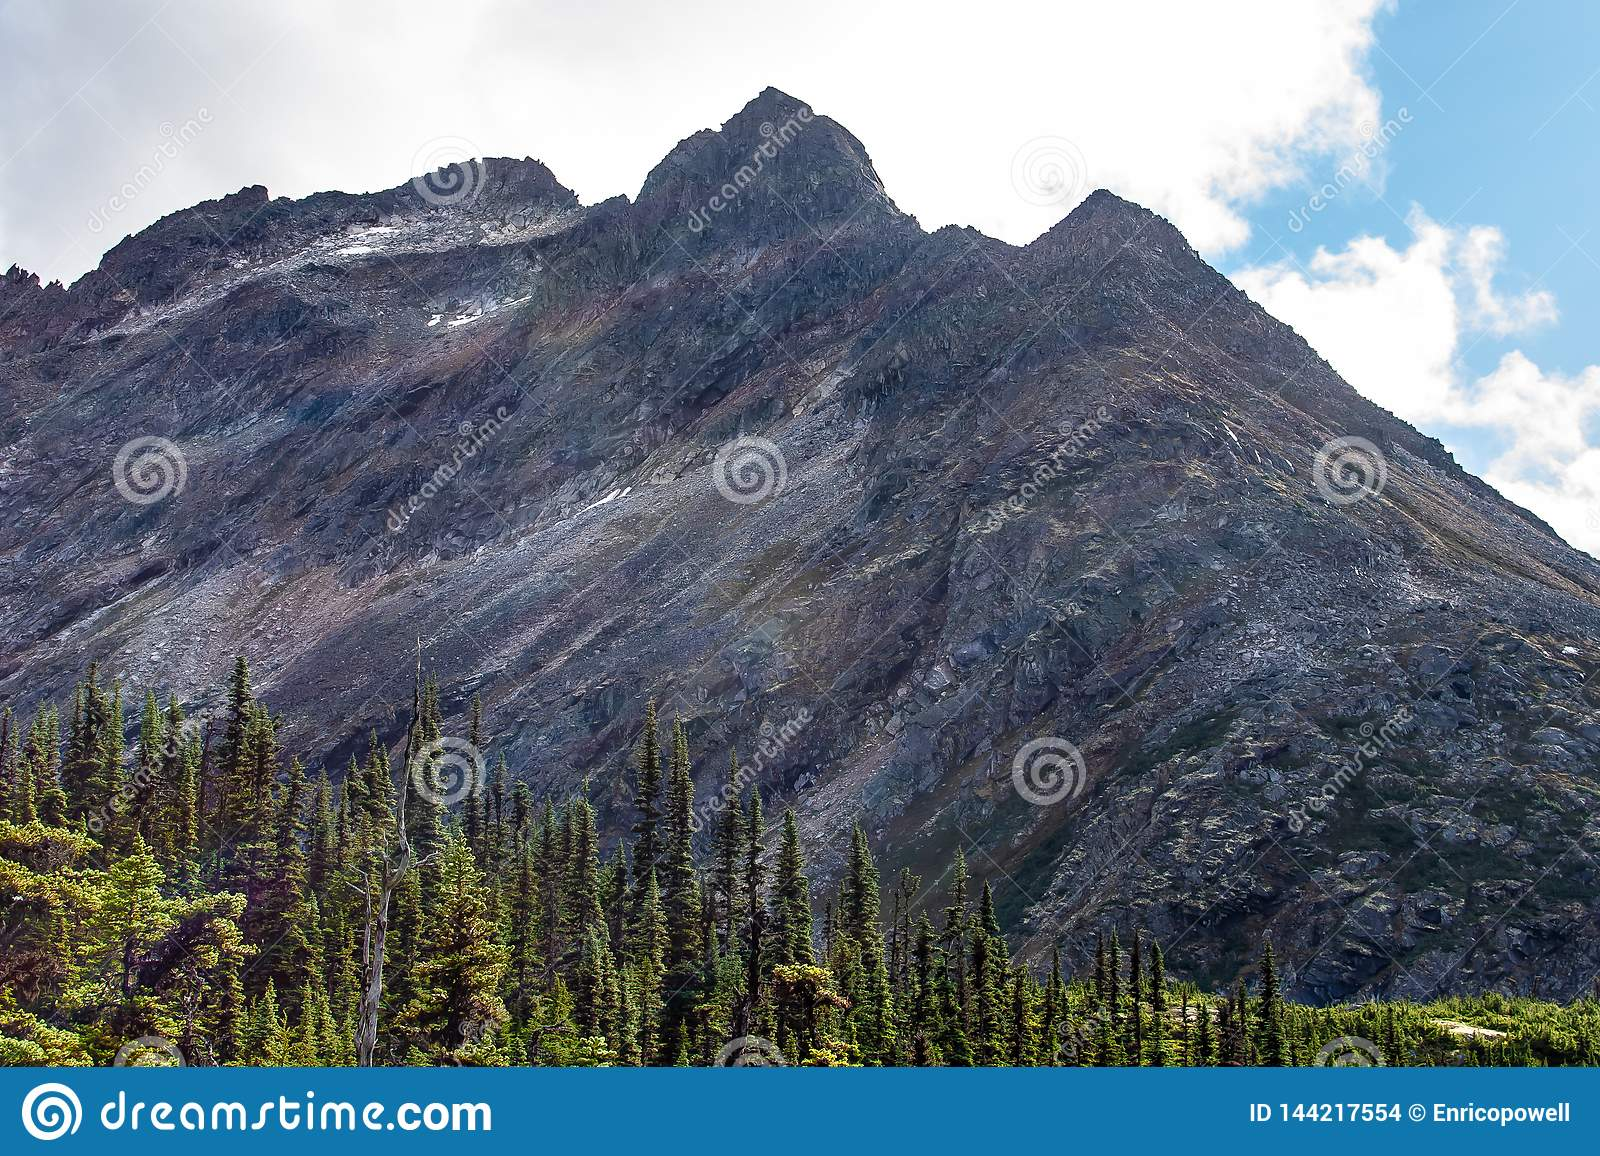 Landscape view of alpine trees and a huge rocky mountain